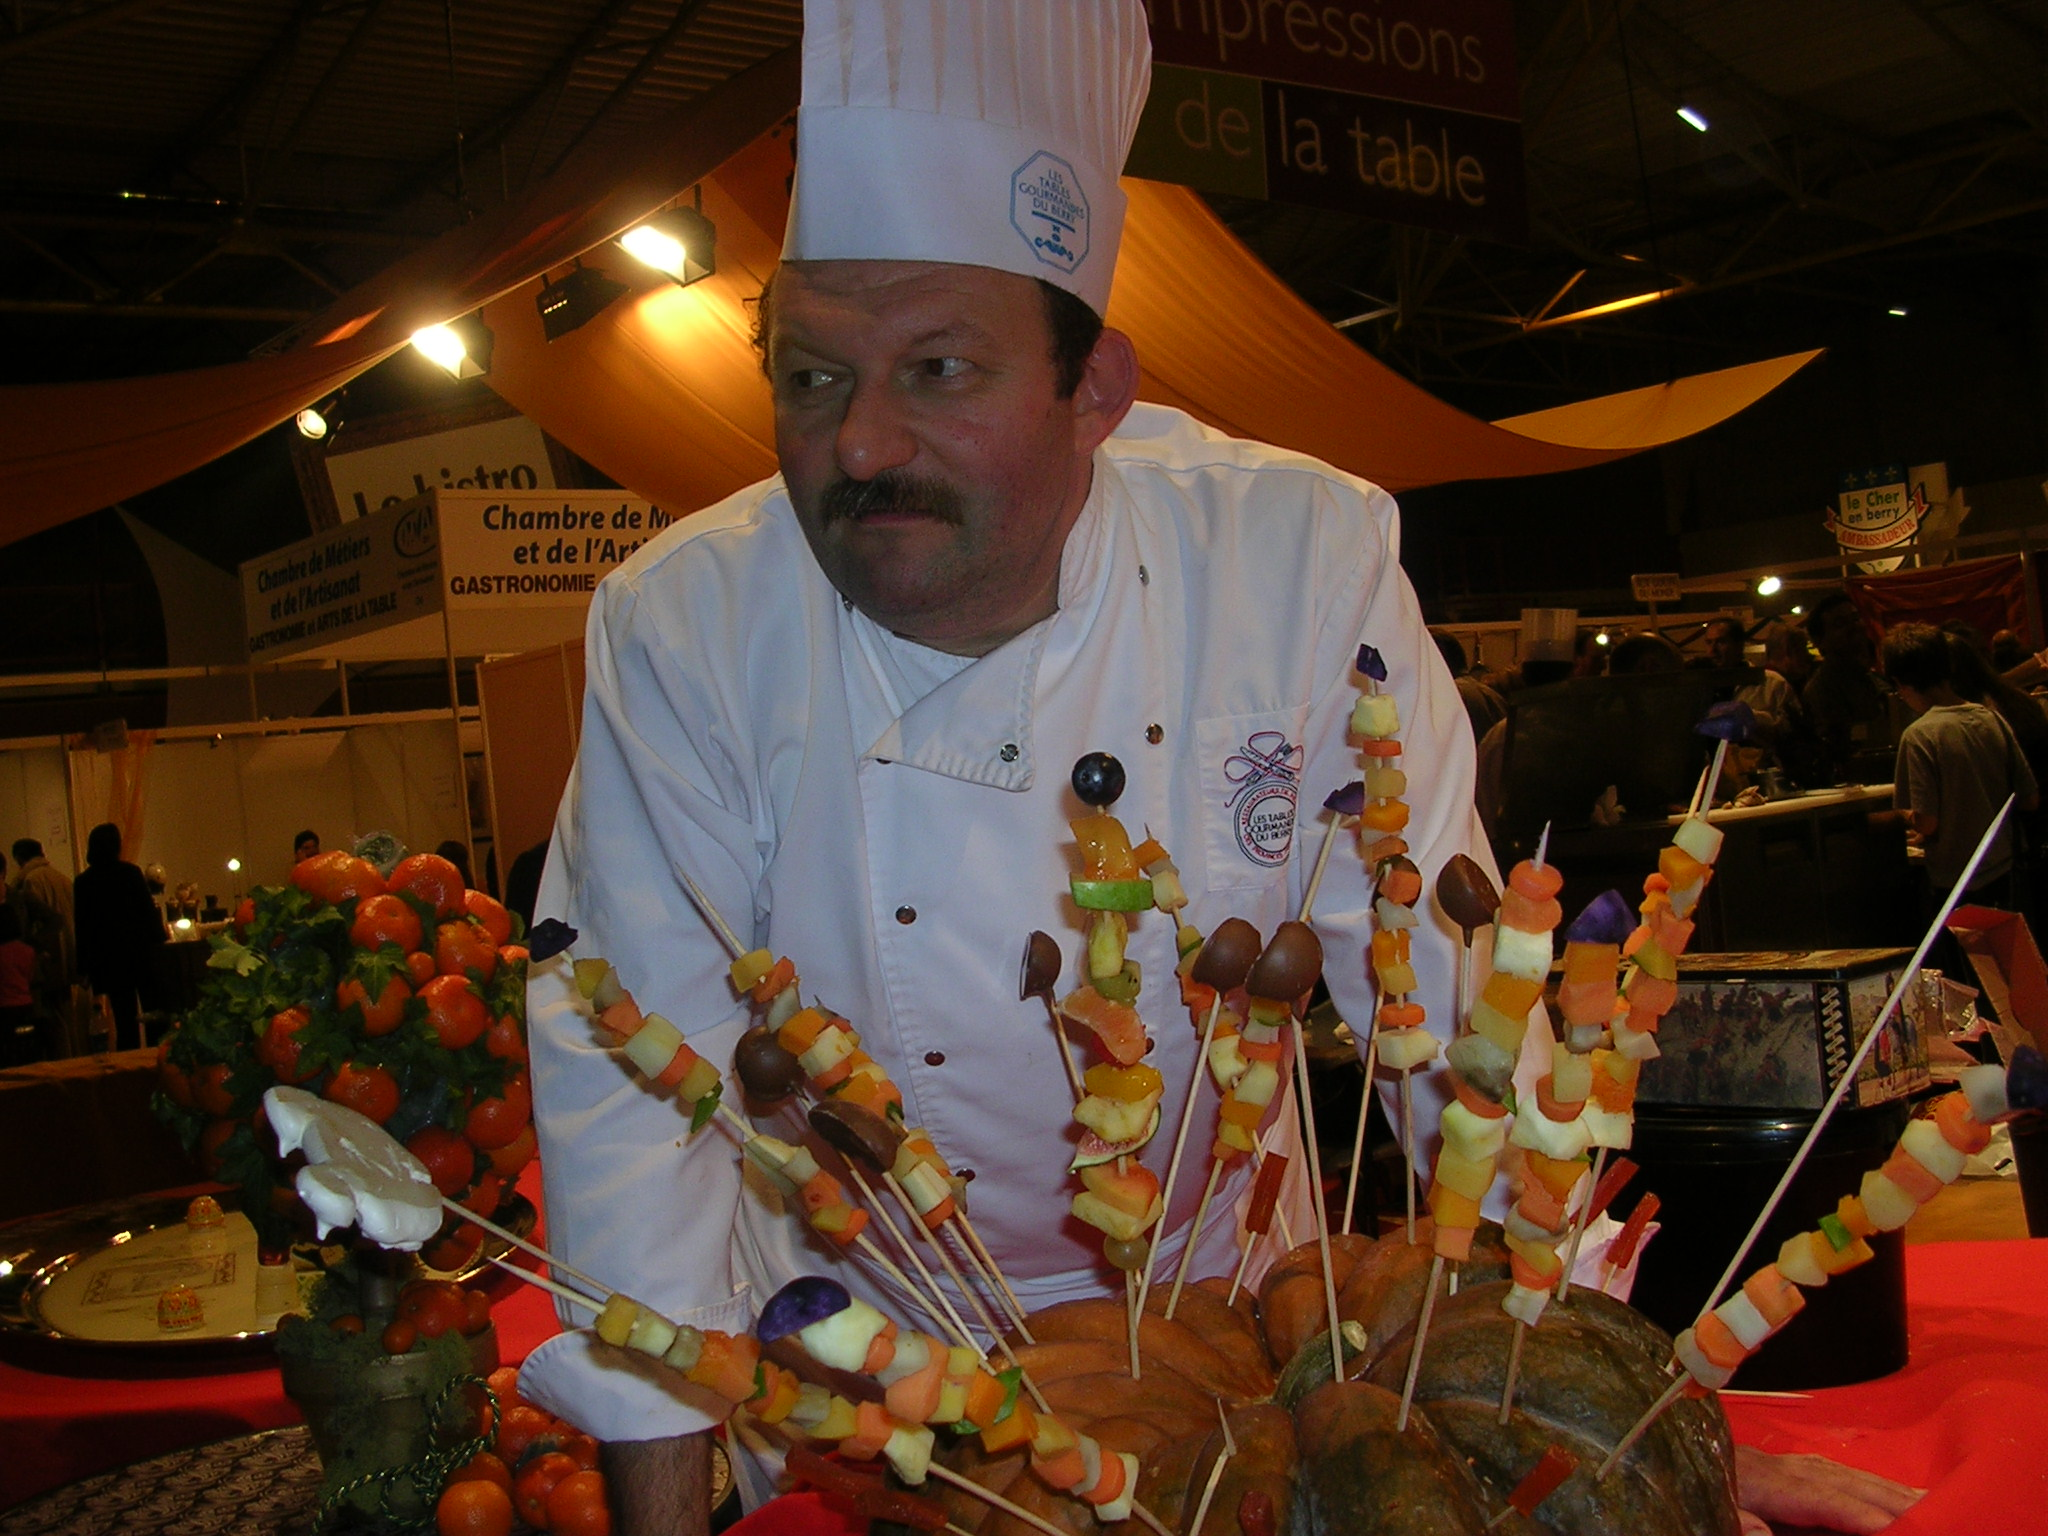 Animations le salon des vins et de la gastronomie for Jardin gourmand bourges